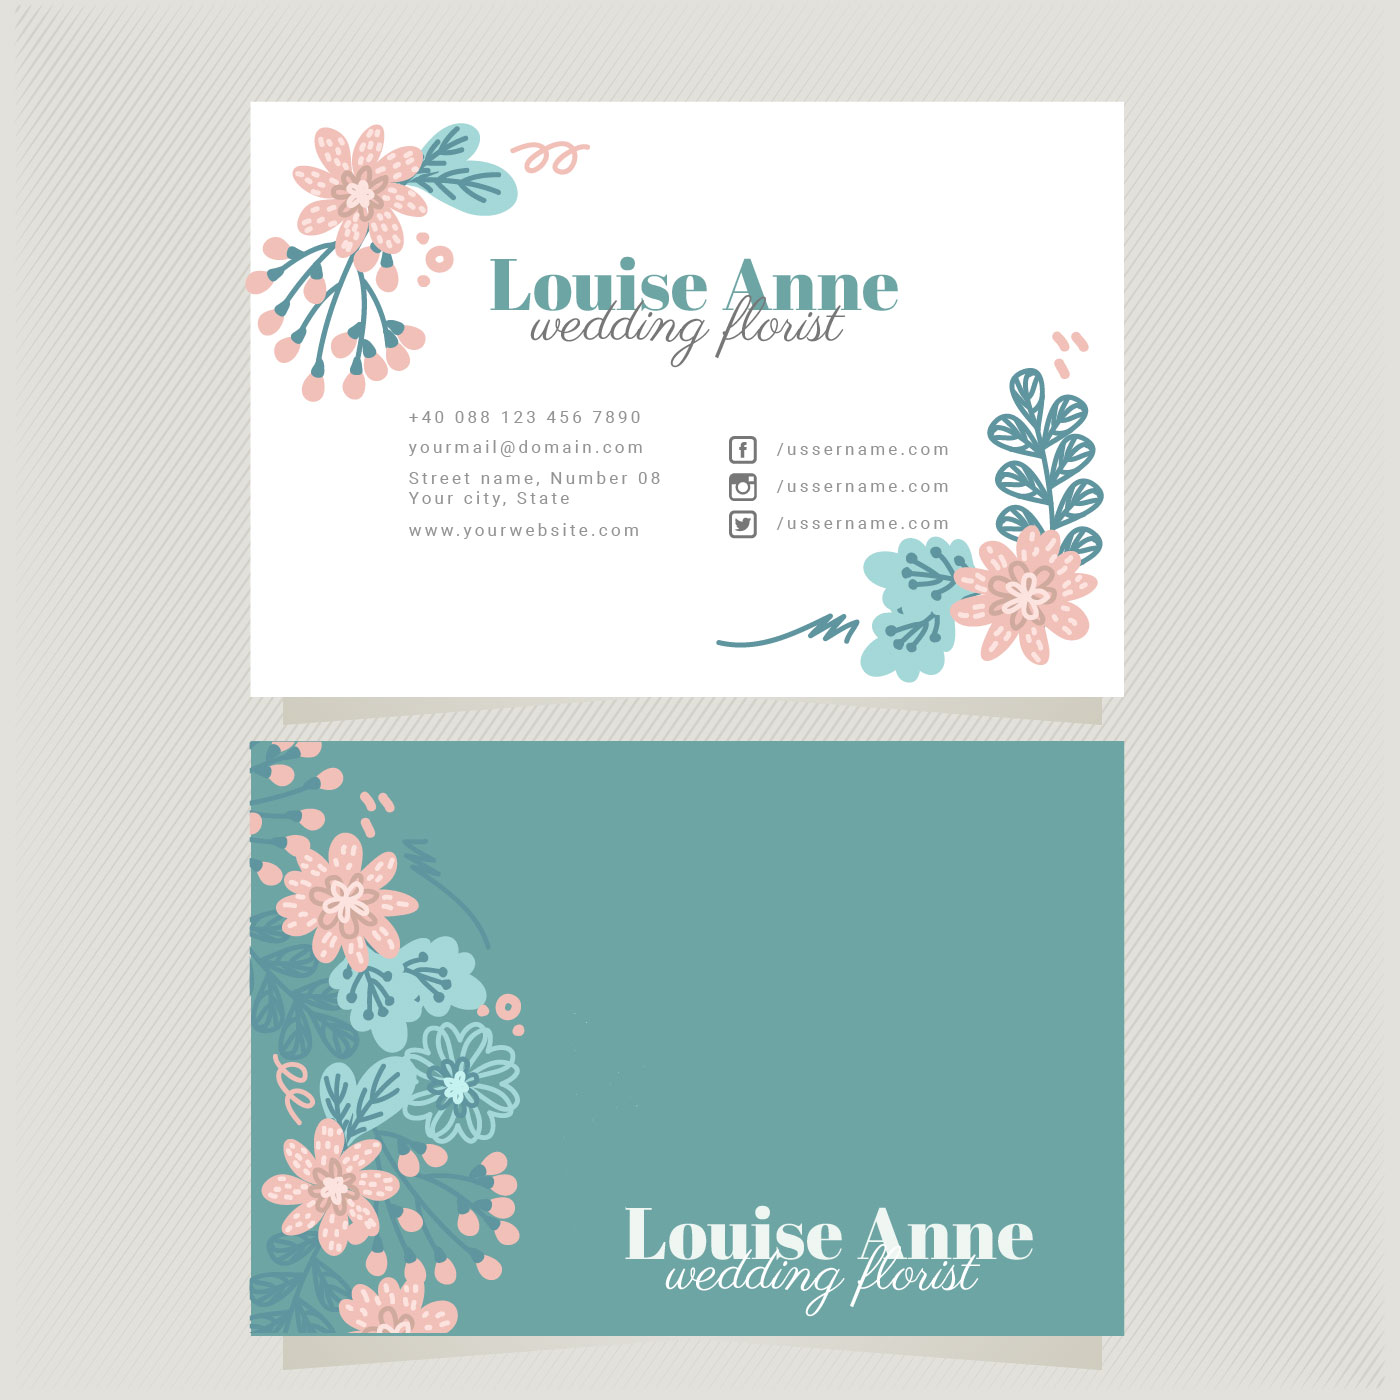 Colorful Template Design For Business Card: Vector Florist Business Card Template